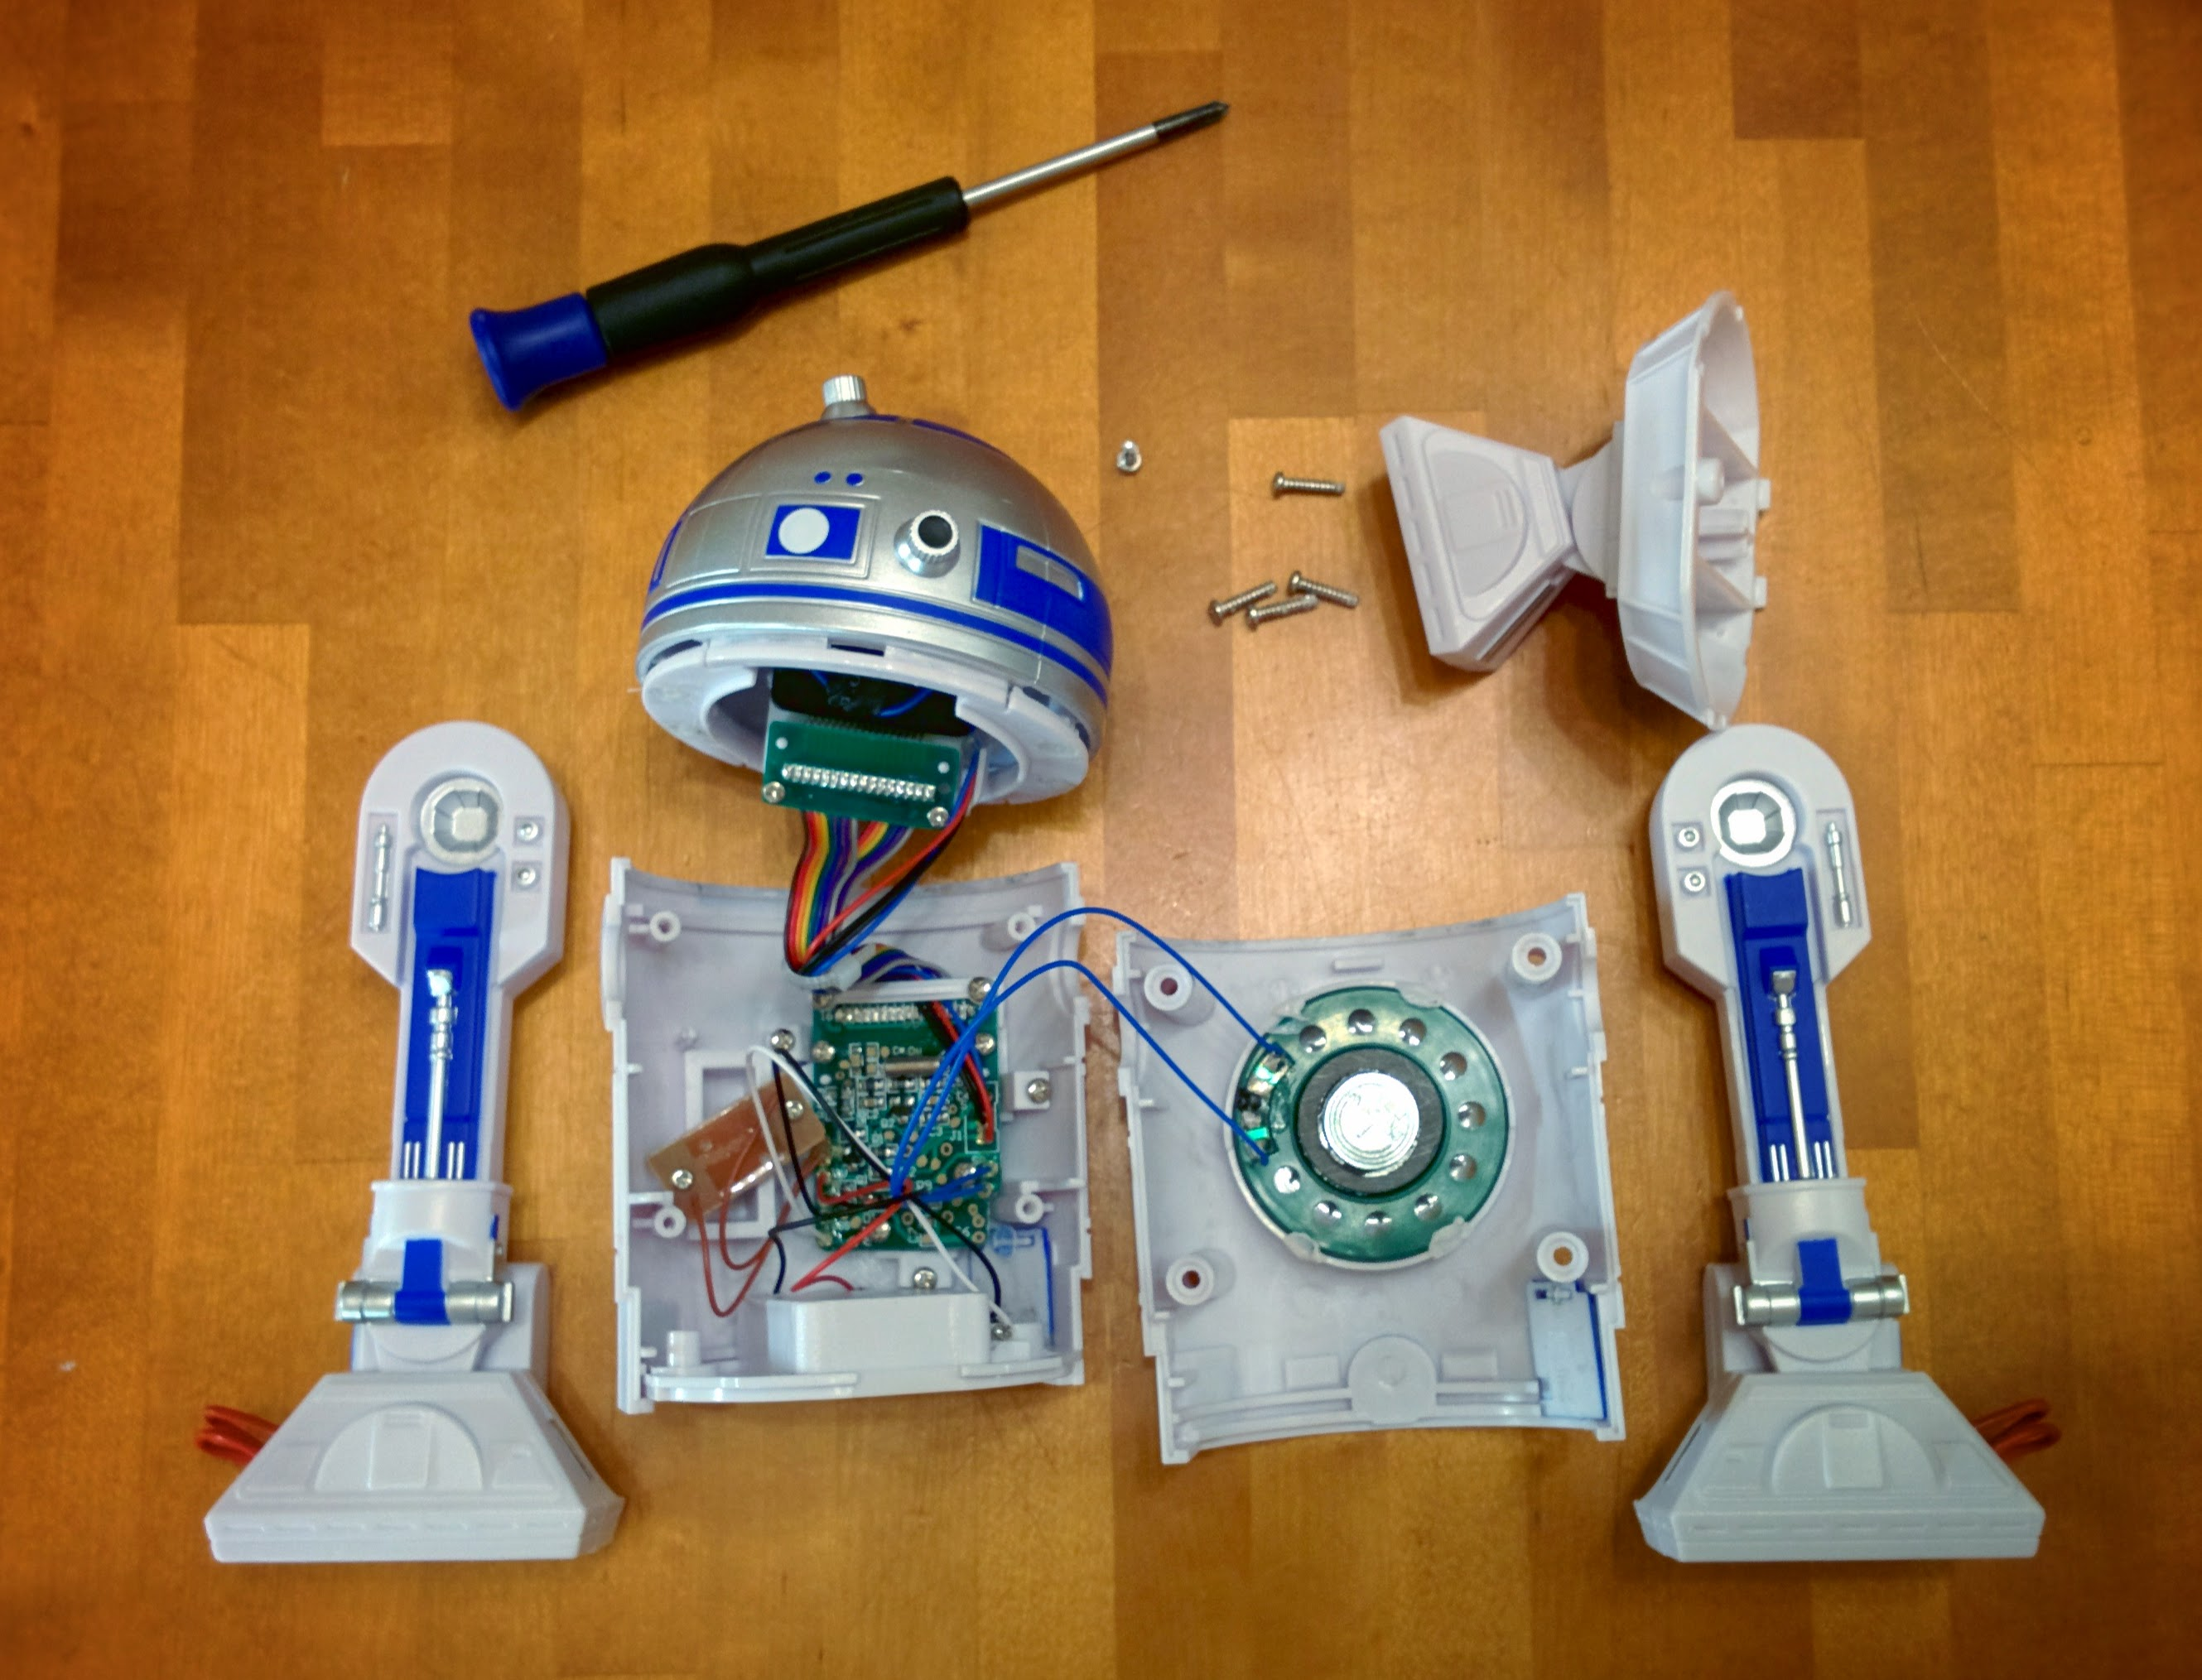 Picture of Dismantle the Toy and Locate the Speaker